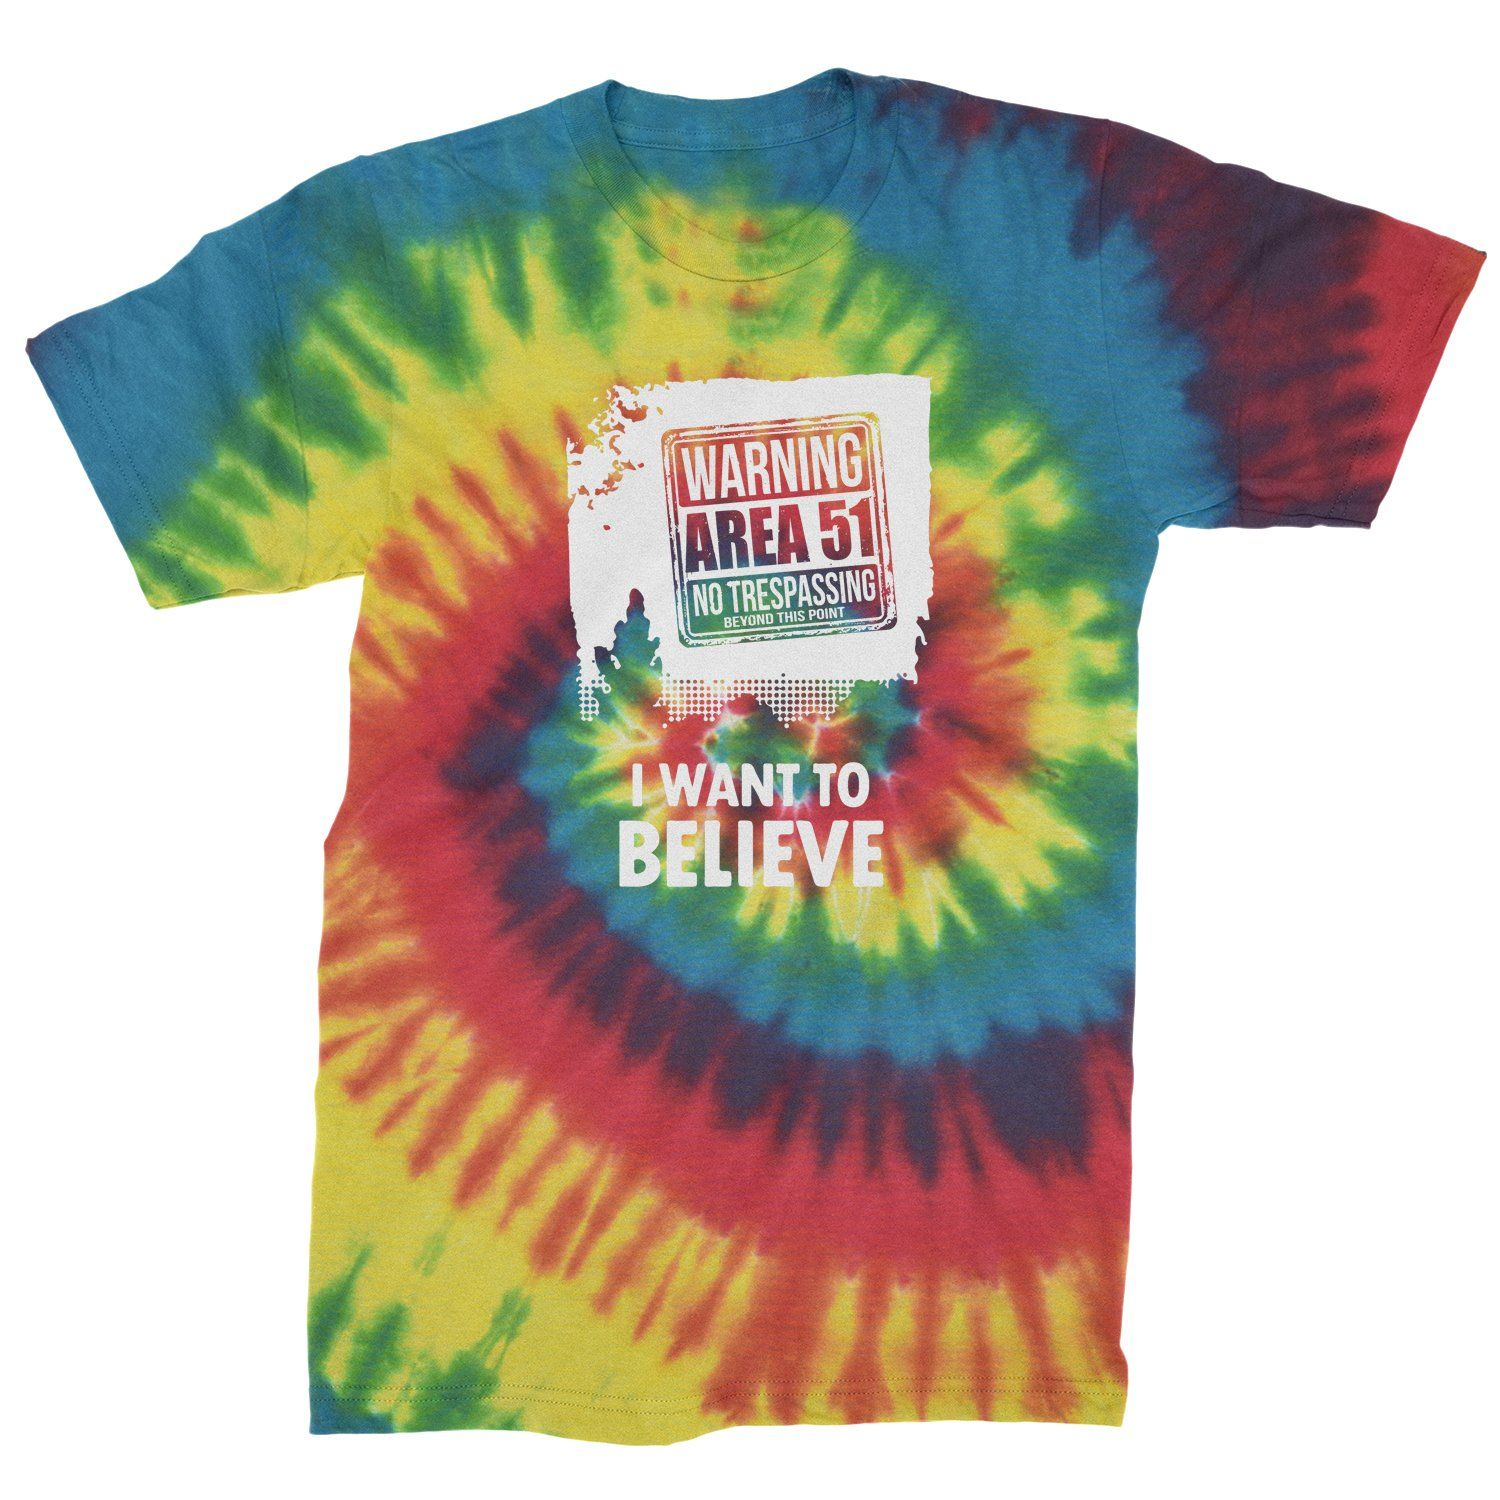 Storm Area 51 - I Want To Believe Mens Tye-Dye T-shirt #area51partyoutfit